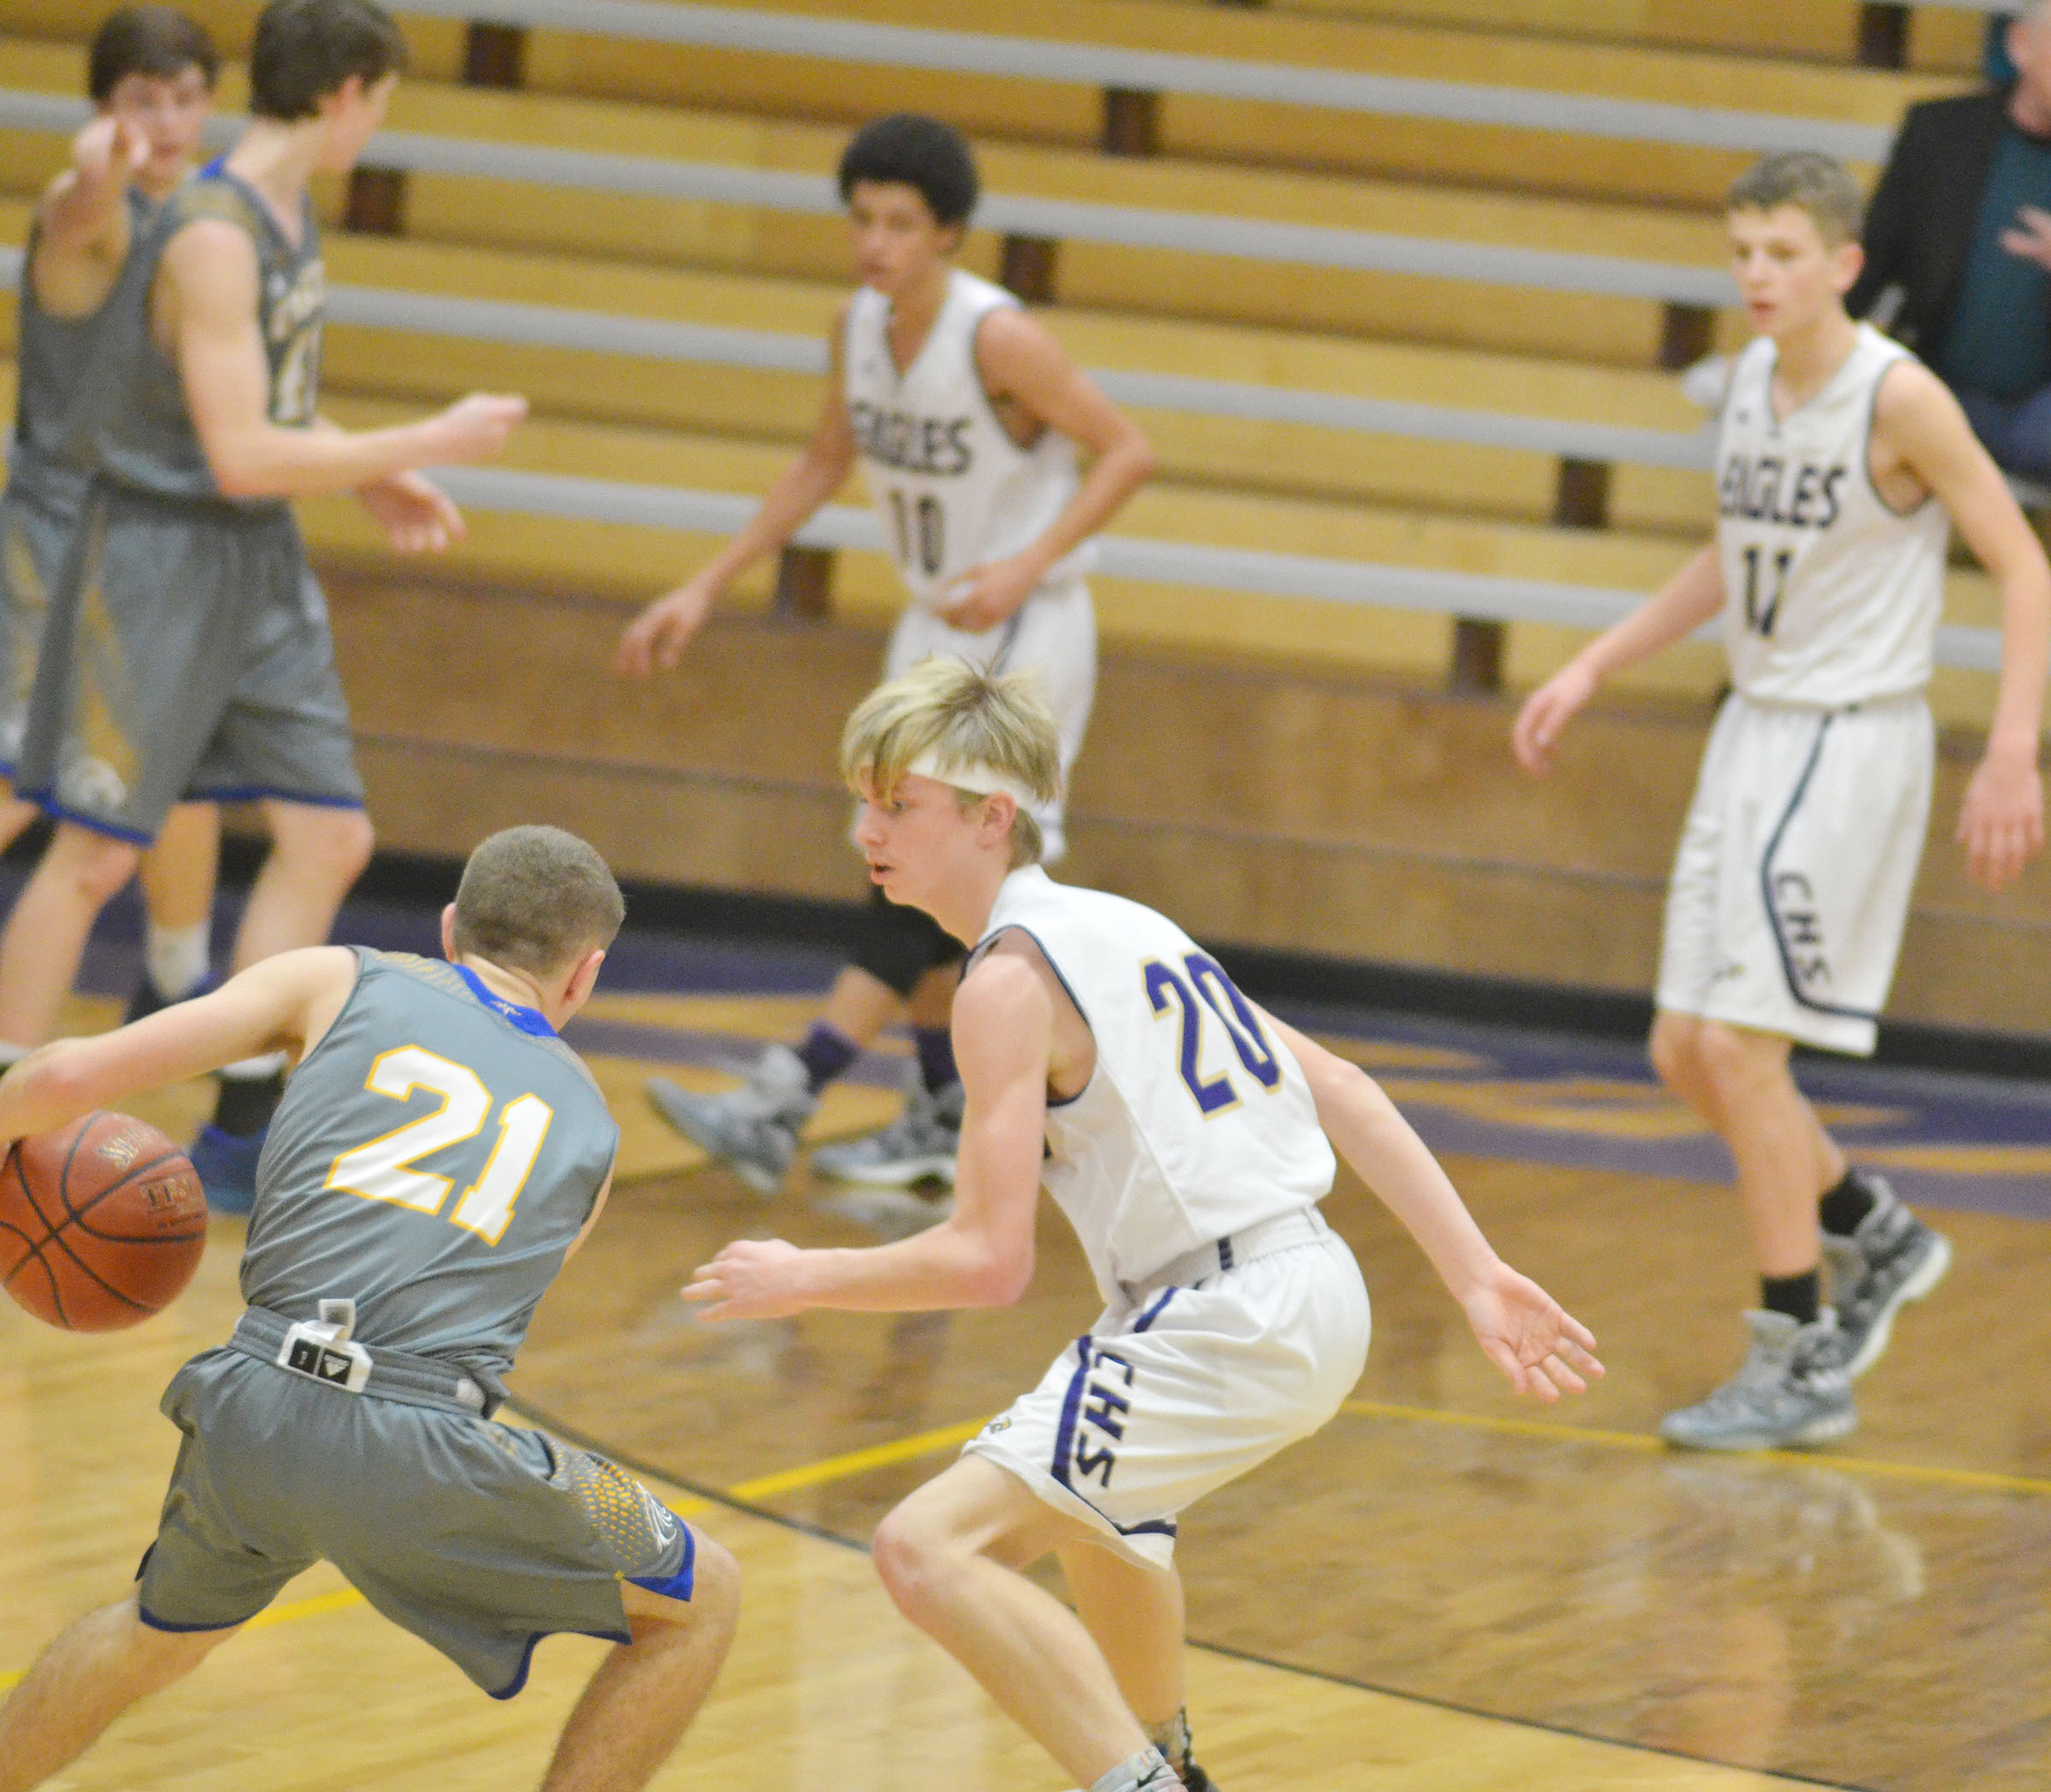 Campbellsville Middle School eighth-grader Arren Hash plays defense.